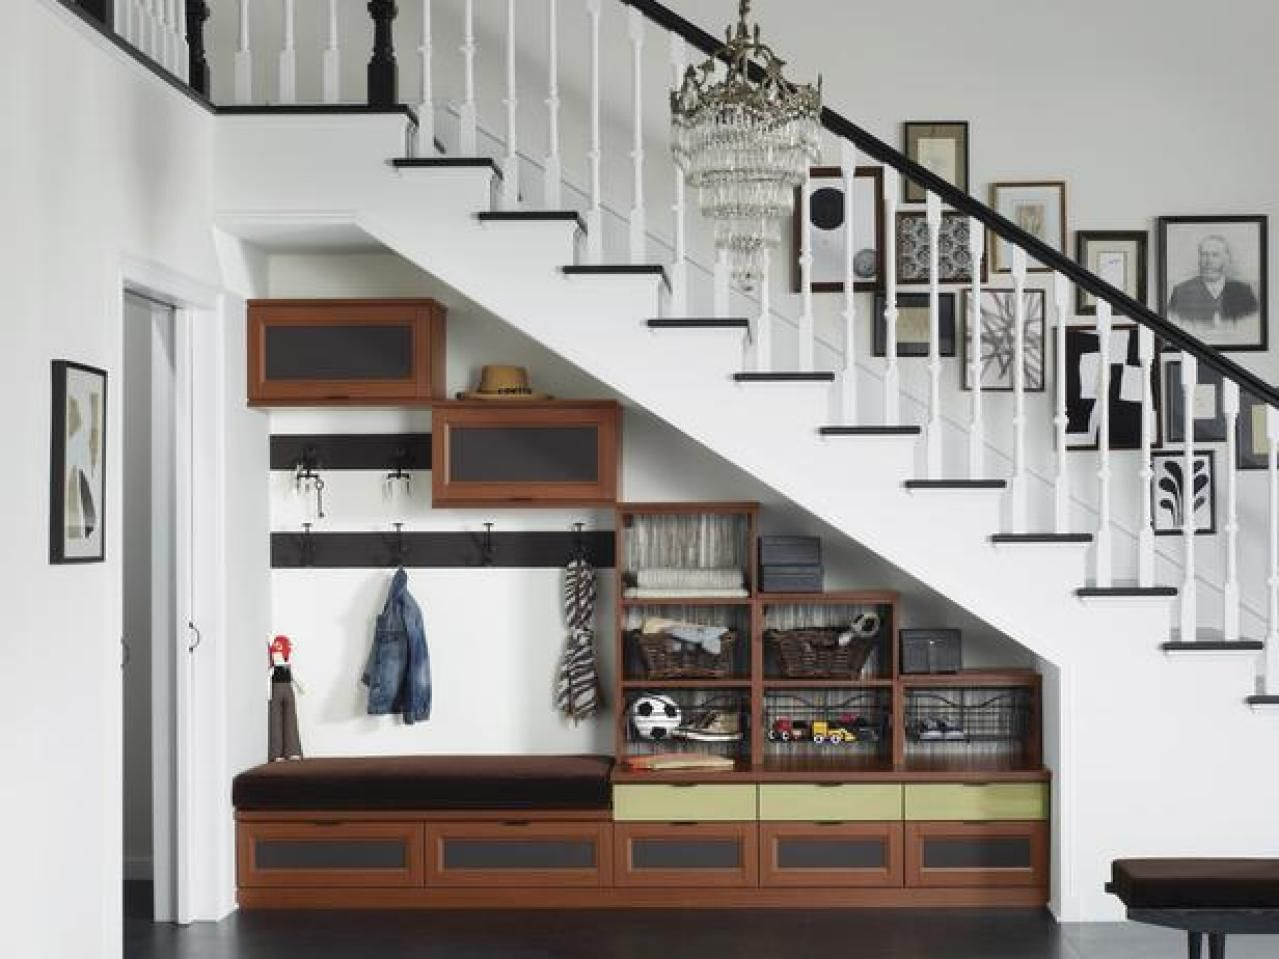 9 Staircase Storage Ideas | Storage Ideas u0026 How-Tos for Closets Garages Laundry Rooms u0026 More | DIY & 9 Staircase Storage Ideas | Garage laundry rooms Staircase storage ...